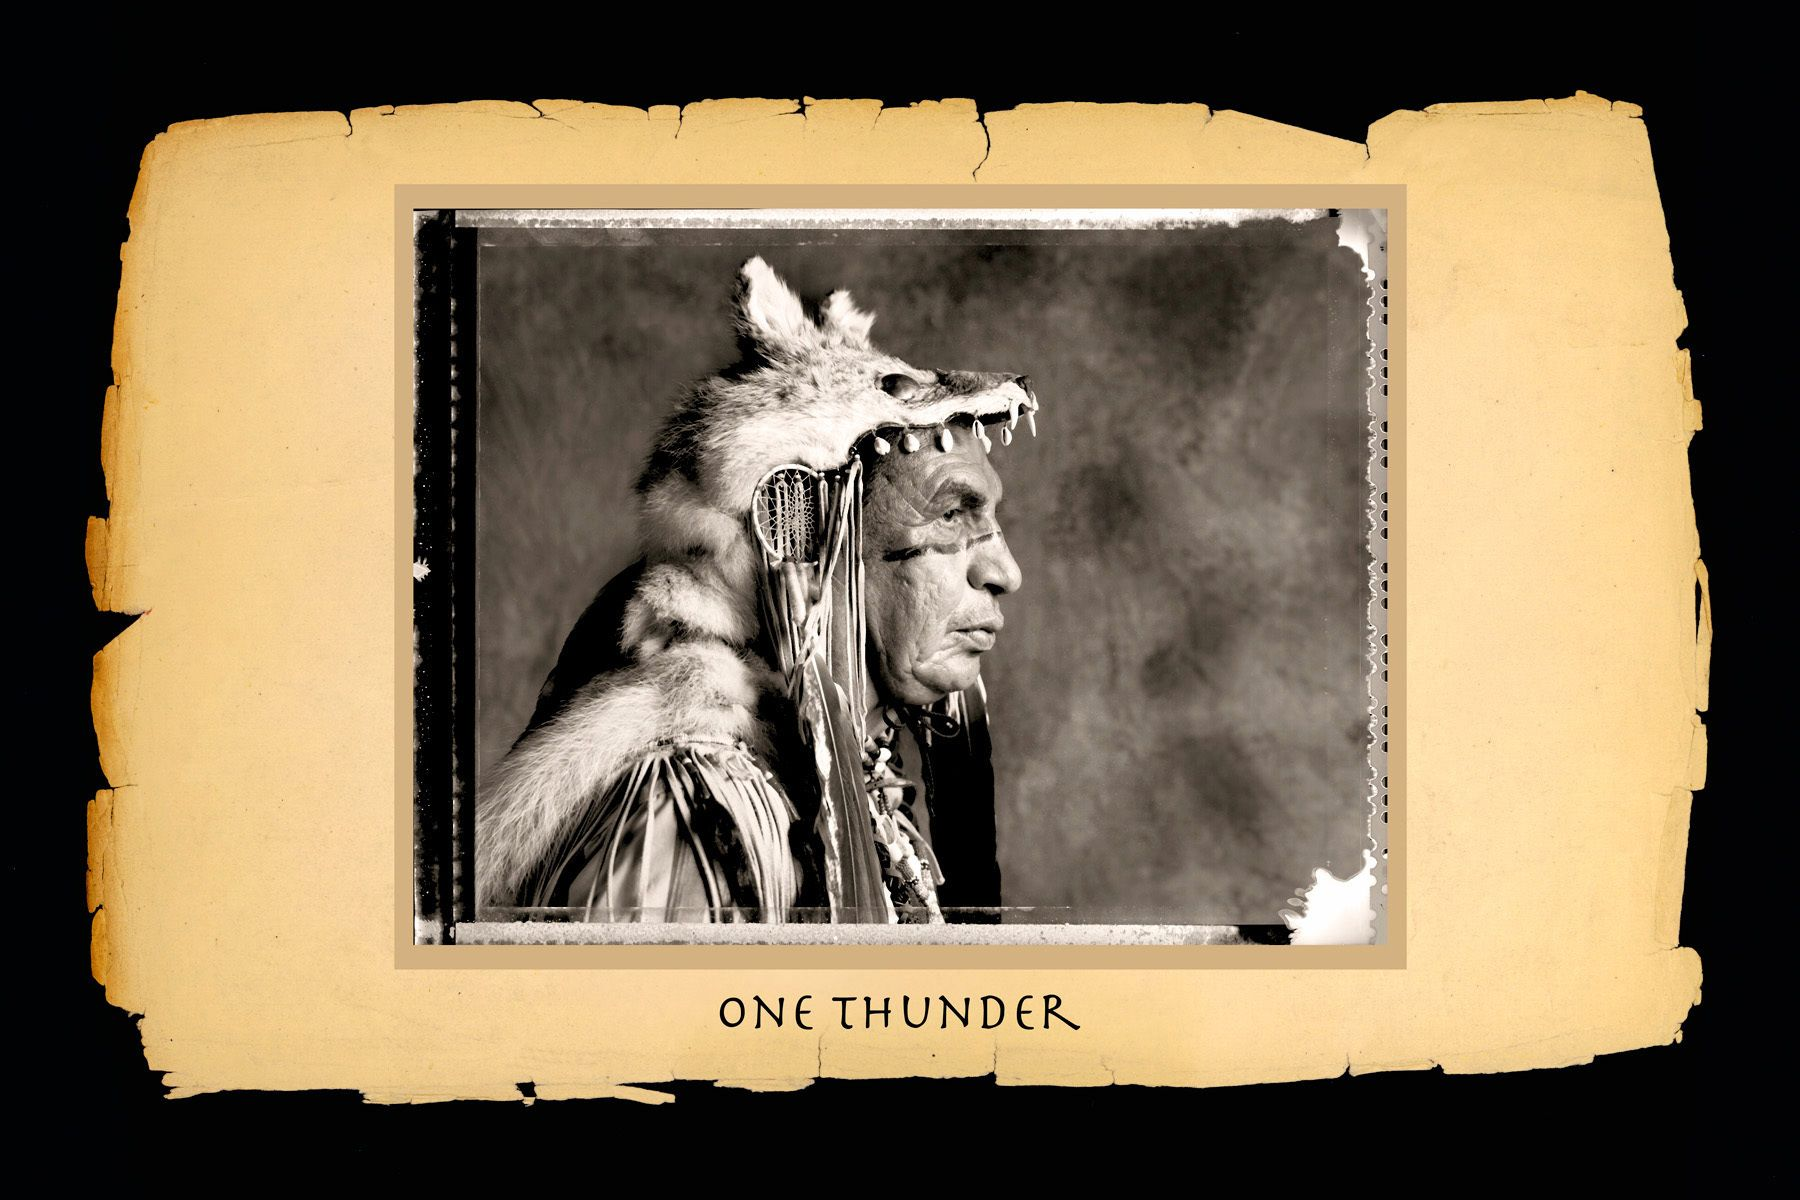 One Thunder,Standing Rock Sioux